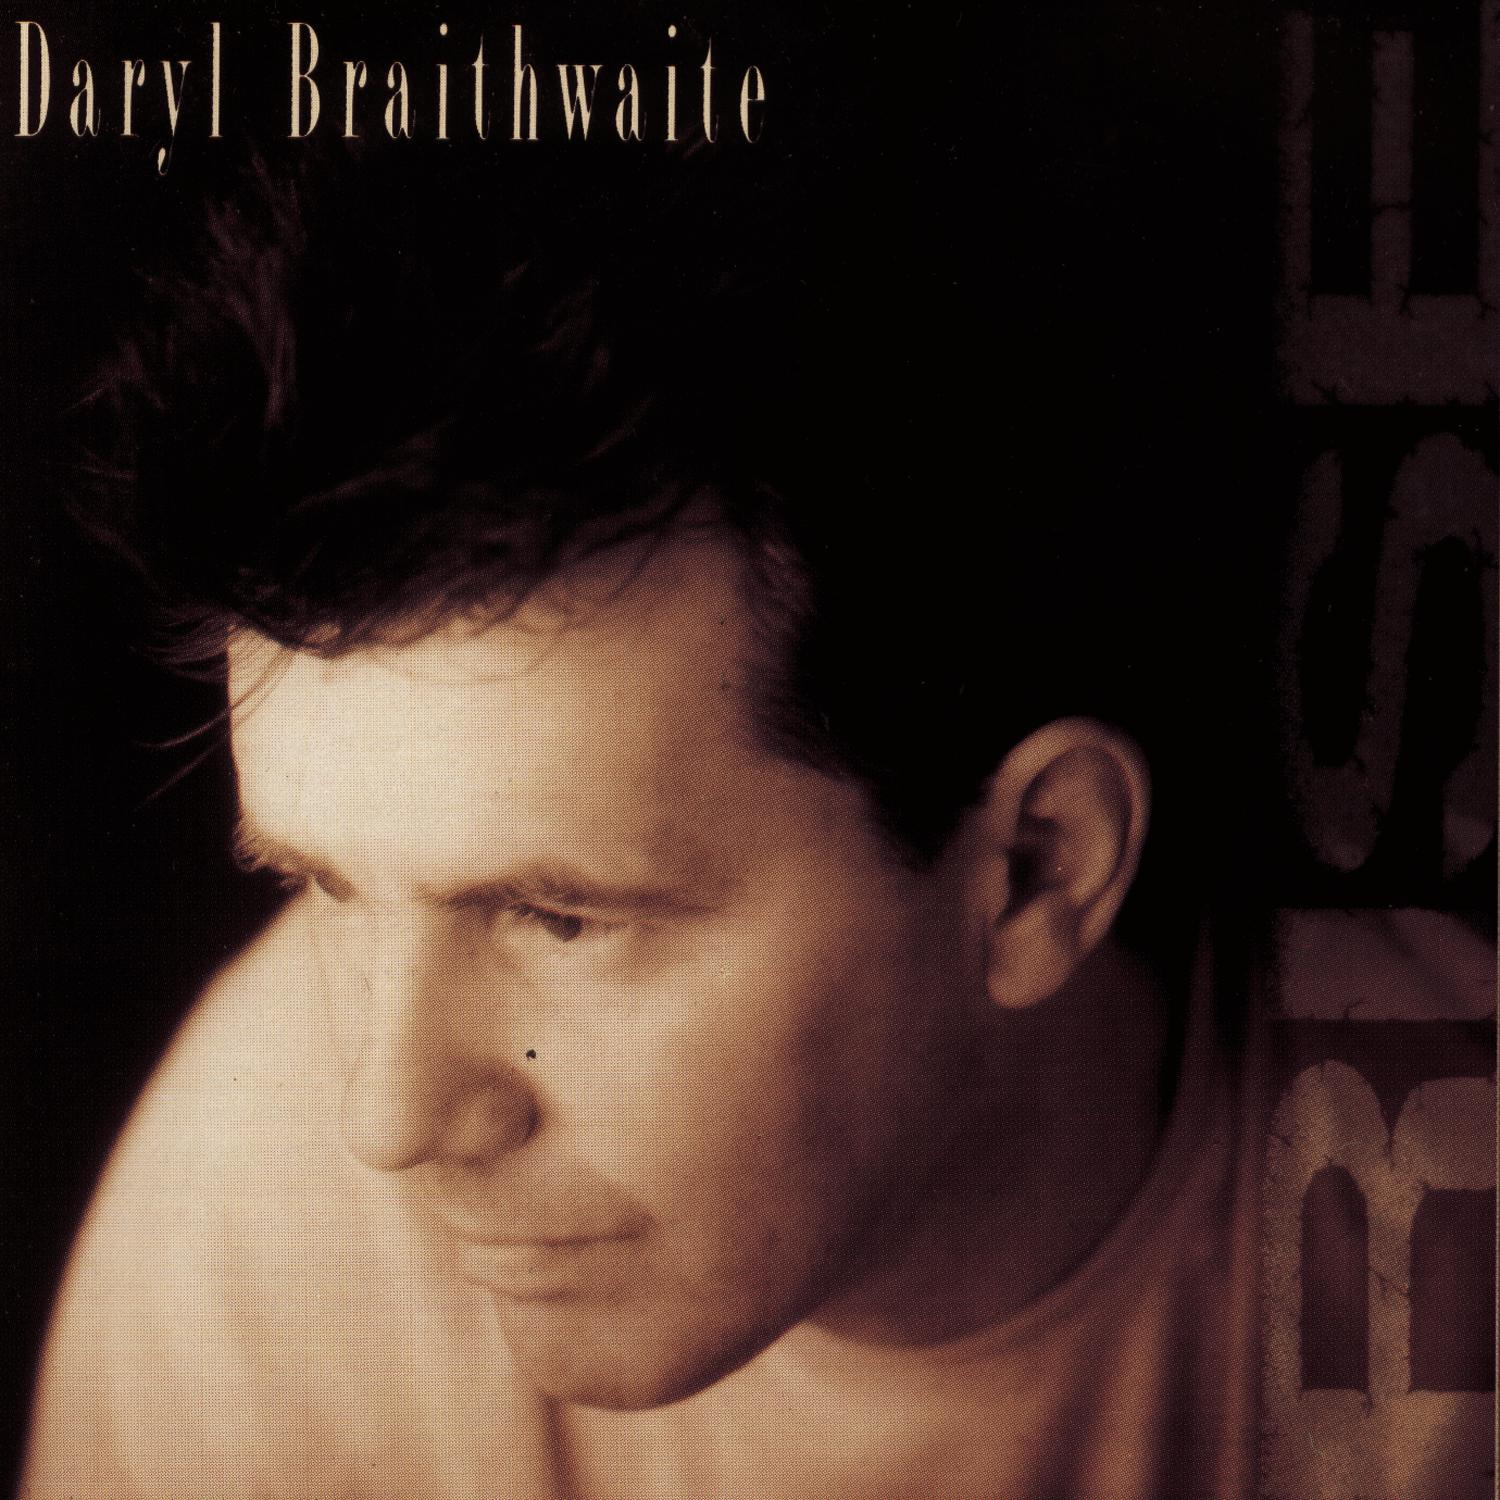 Daryl Braithwaite celebrates 30 years since The Horses was released.